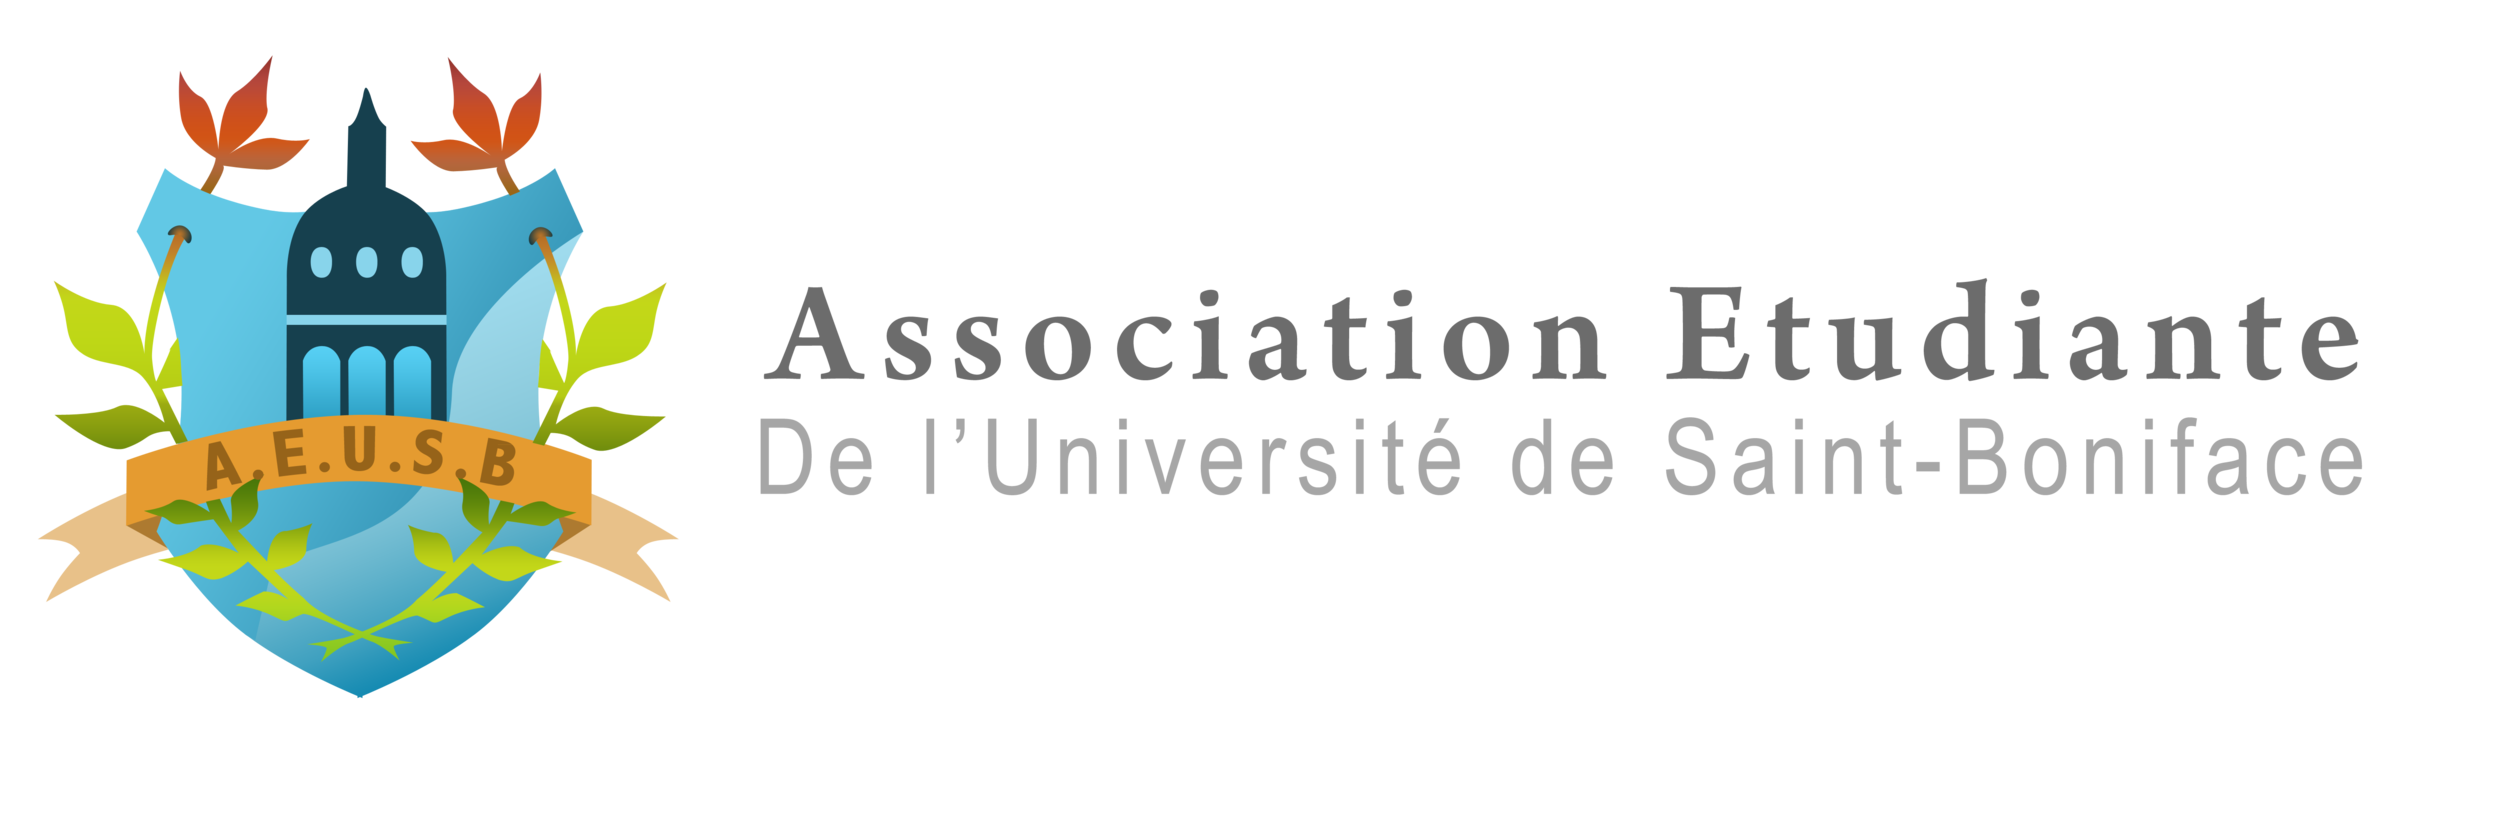 Association Étudiante de l'Université de Saint-Boniface (AEUSB)